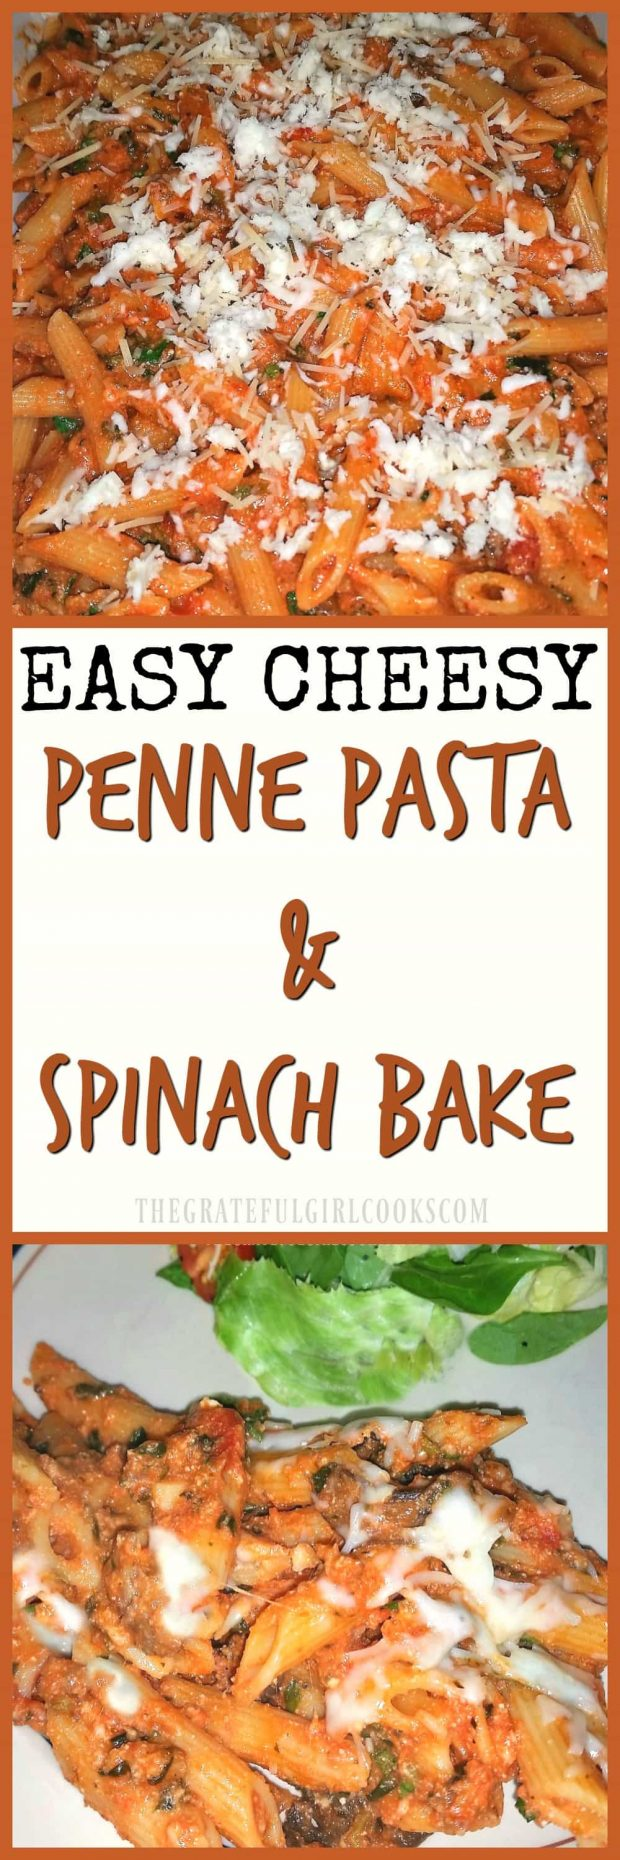 EASY CHEESY Penne Pasta and Spinach Bake / The Grateful Girl Cooks! EASY to prepare, delicious and filling, this simple casserole features 3 Italian cheeses!